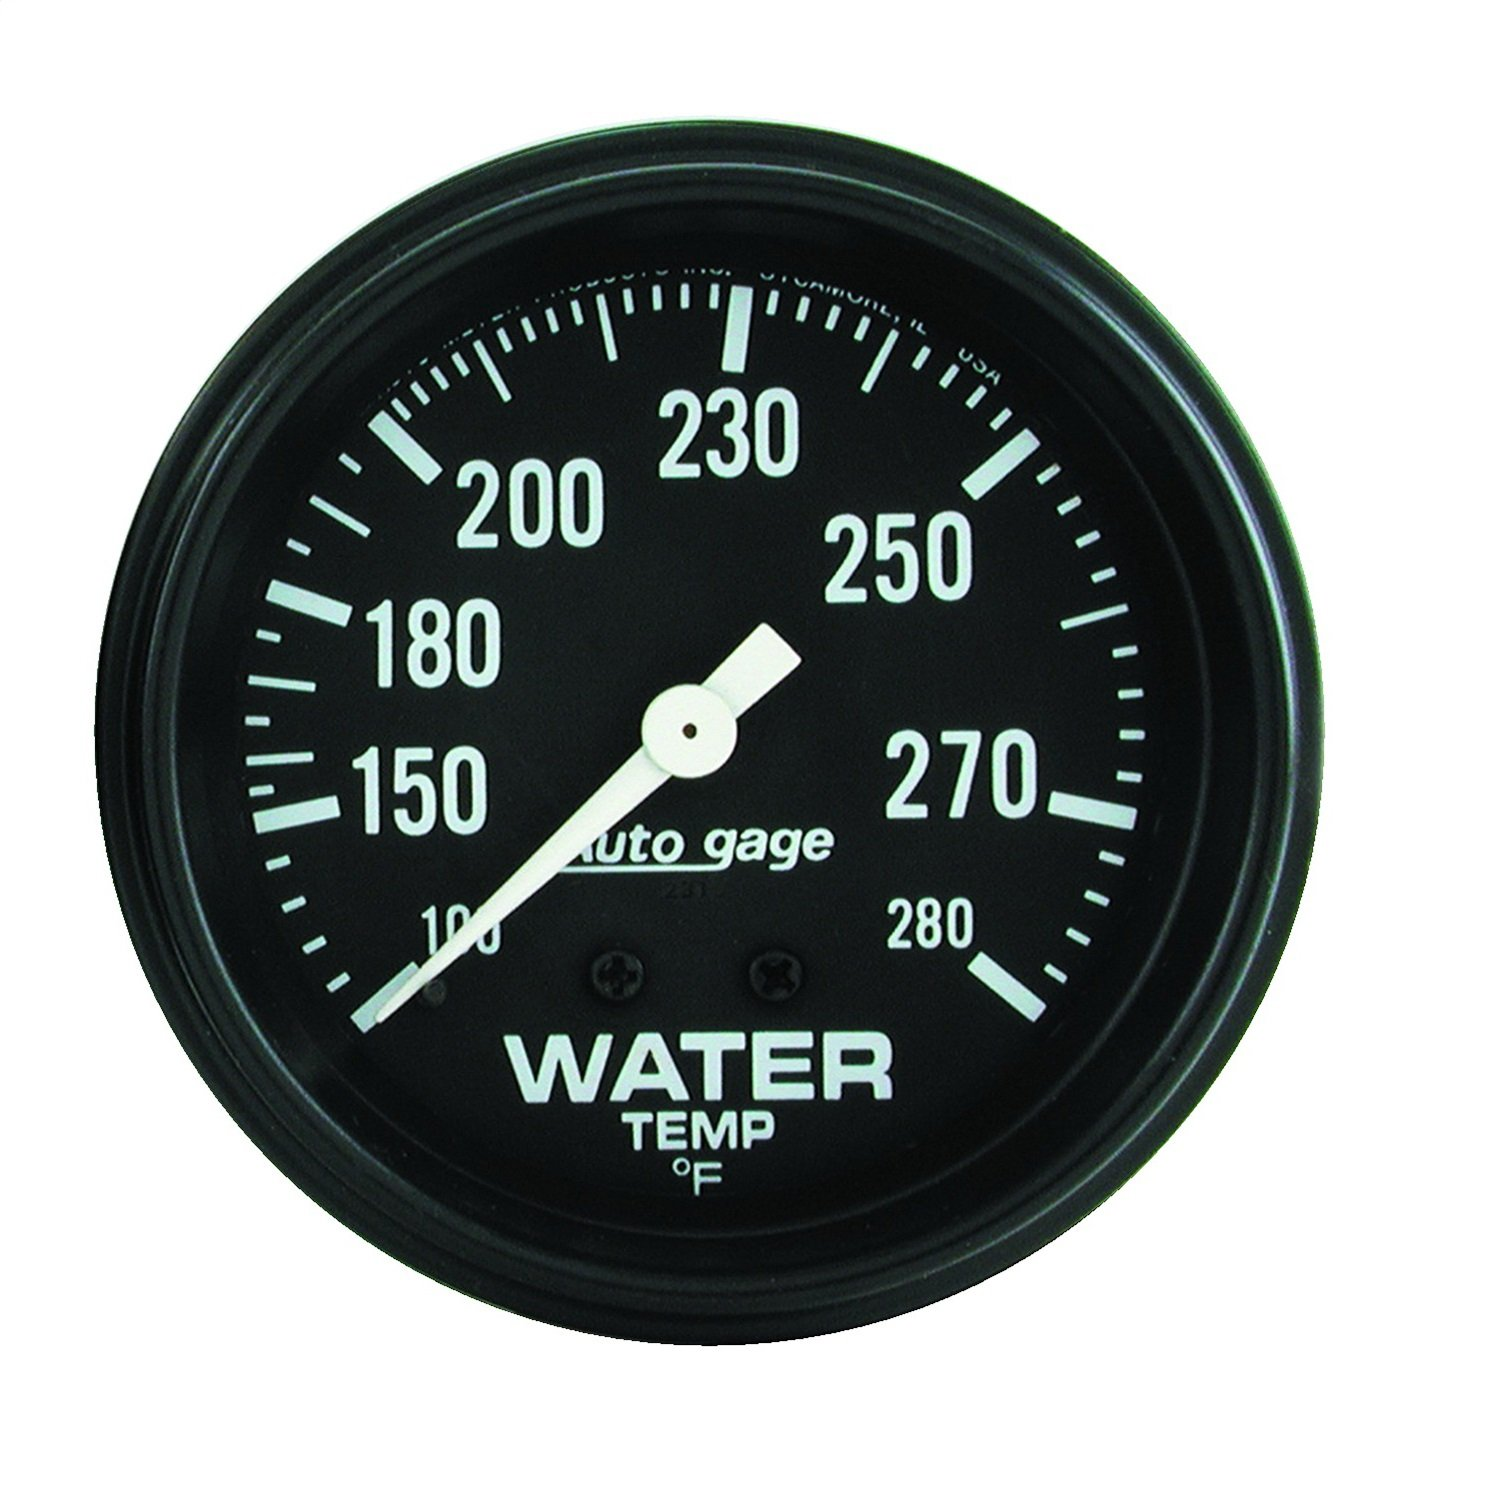 Auto Meter 2313 Autogage Water Temperature Gauge by AUTO METER